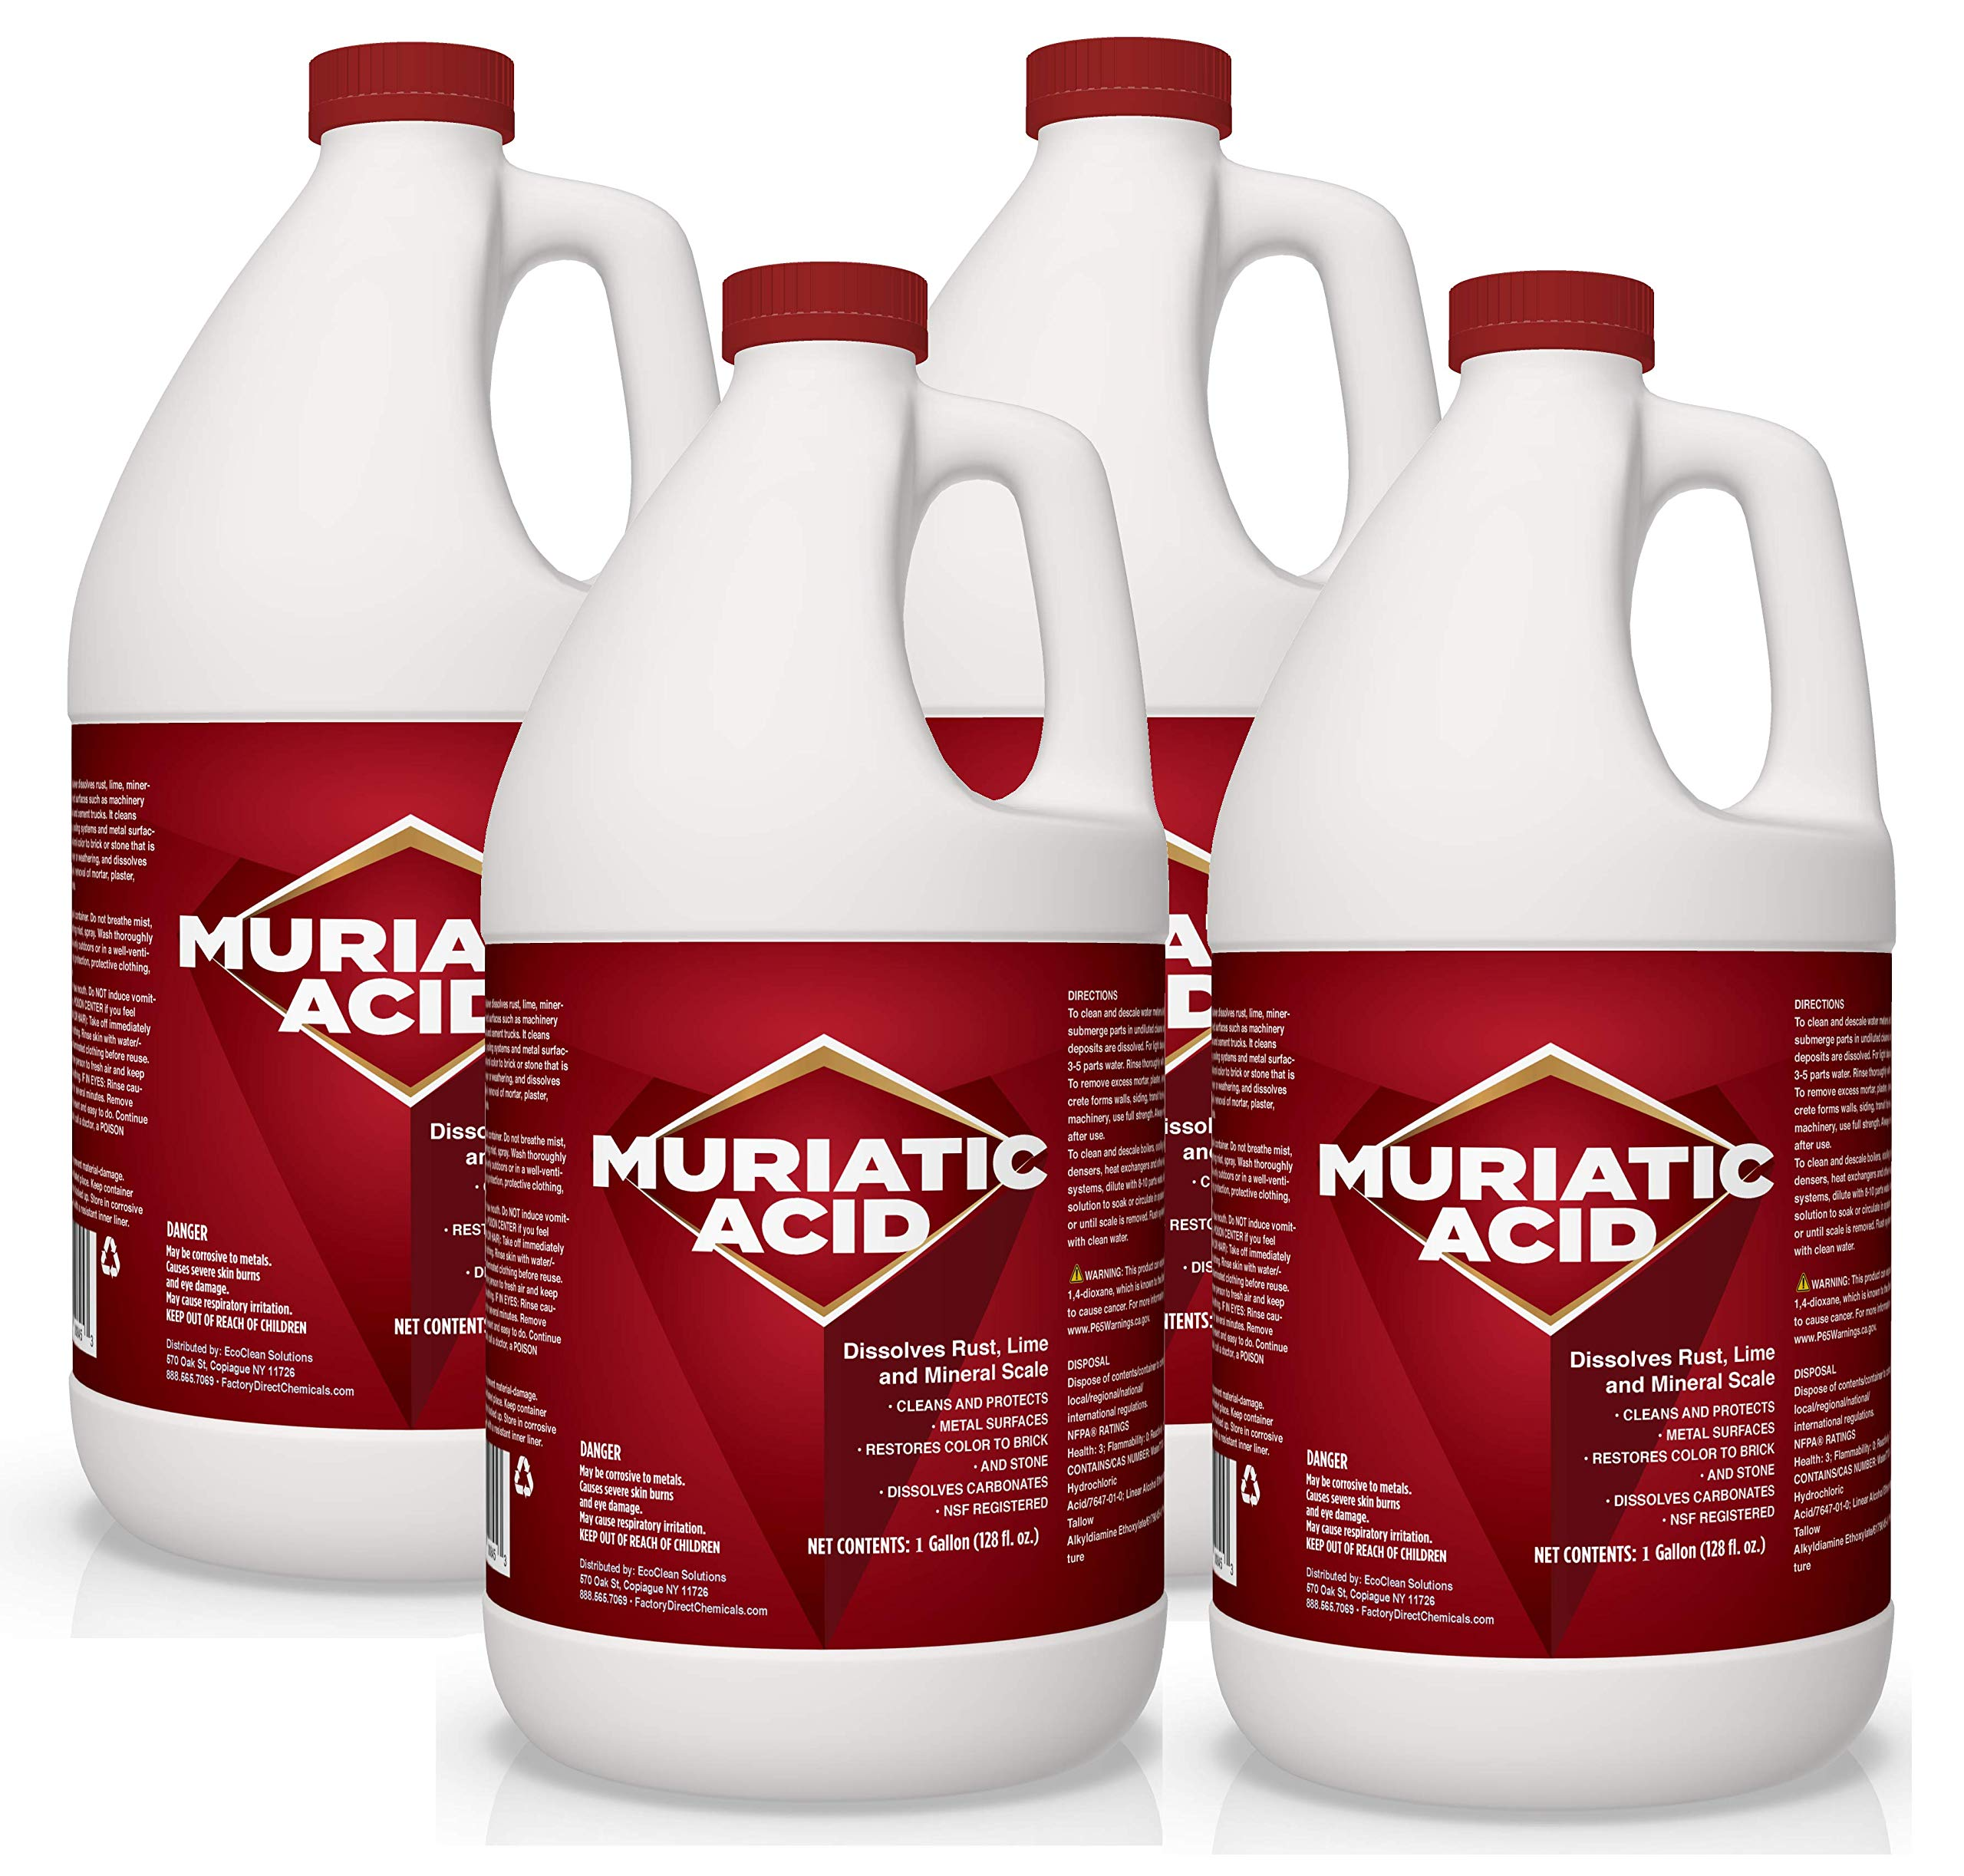 MURIATIC Acid Cleaner | HYDROCHLORIC Acid - Industrial Cleaner & Degreaser | Dissolves Carbonates, Rust, Lime, Mineral Scale | Cleans & Protects Metal Surfaces - 4 X 1 Gallon Case by EcoClean Solutions